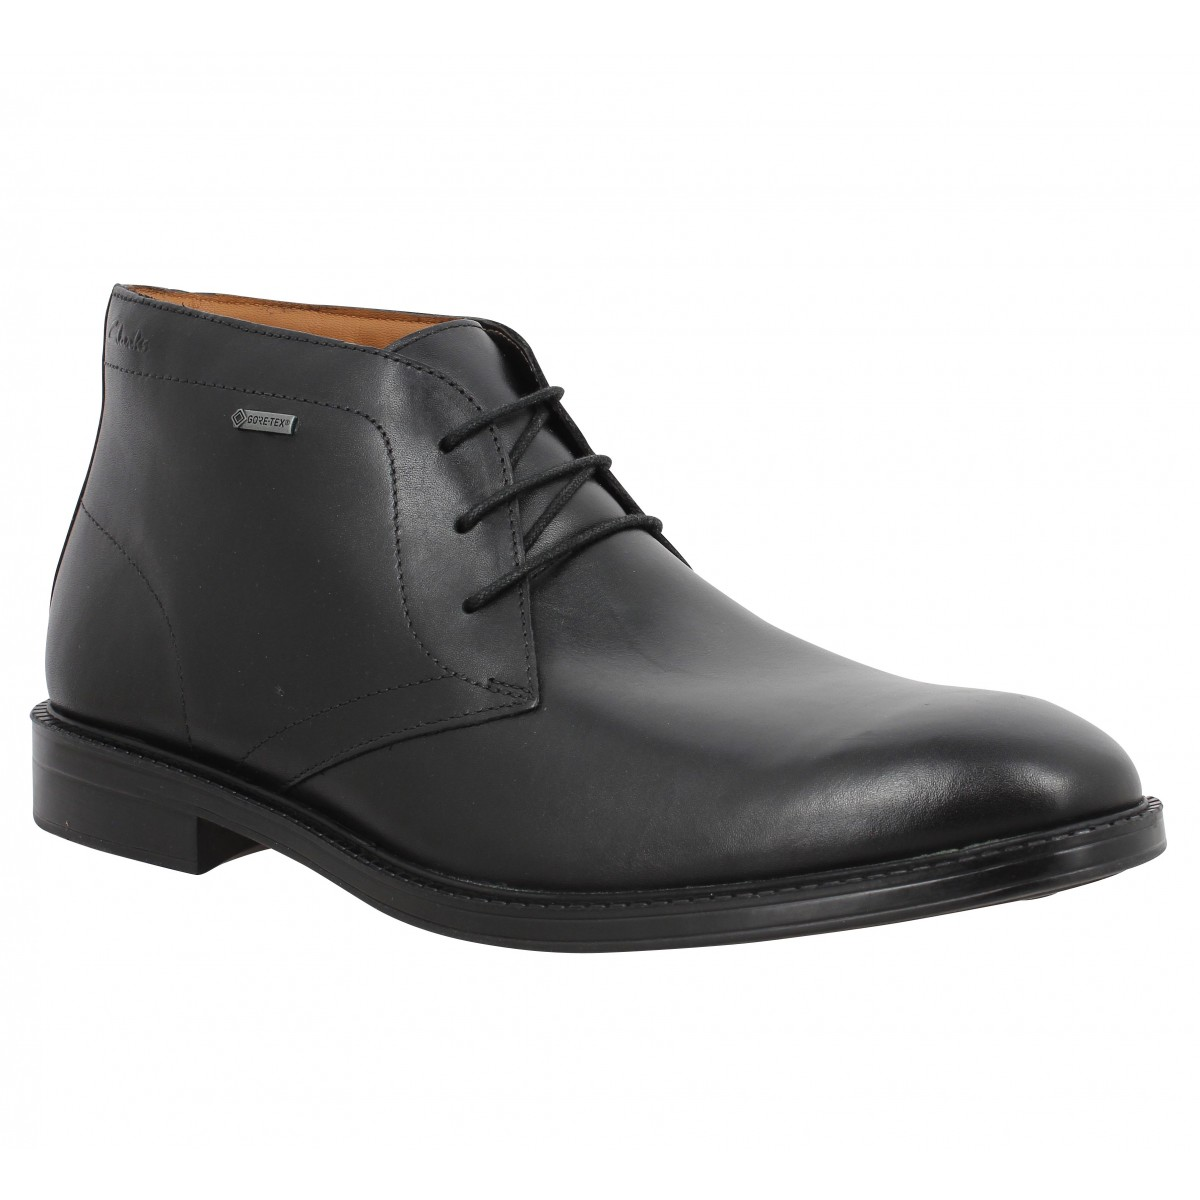 Bottines CLARKS Chilver Hi GTX cuir Noir